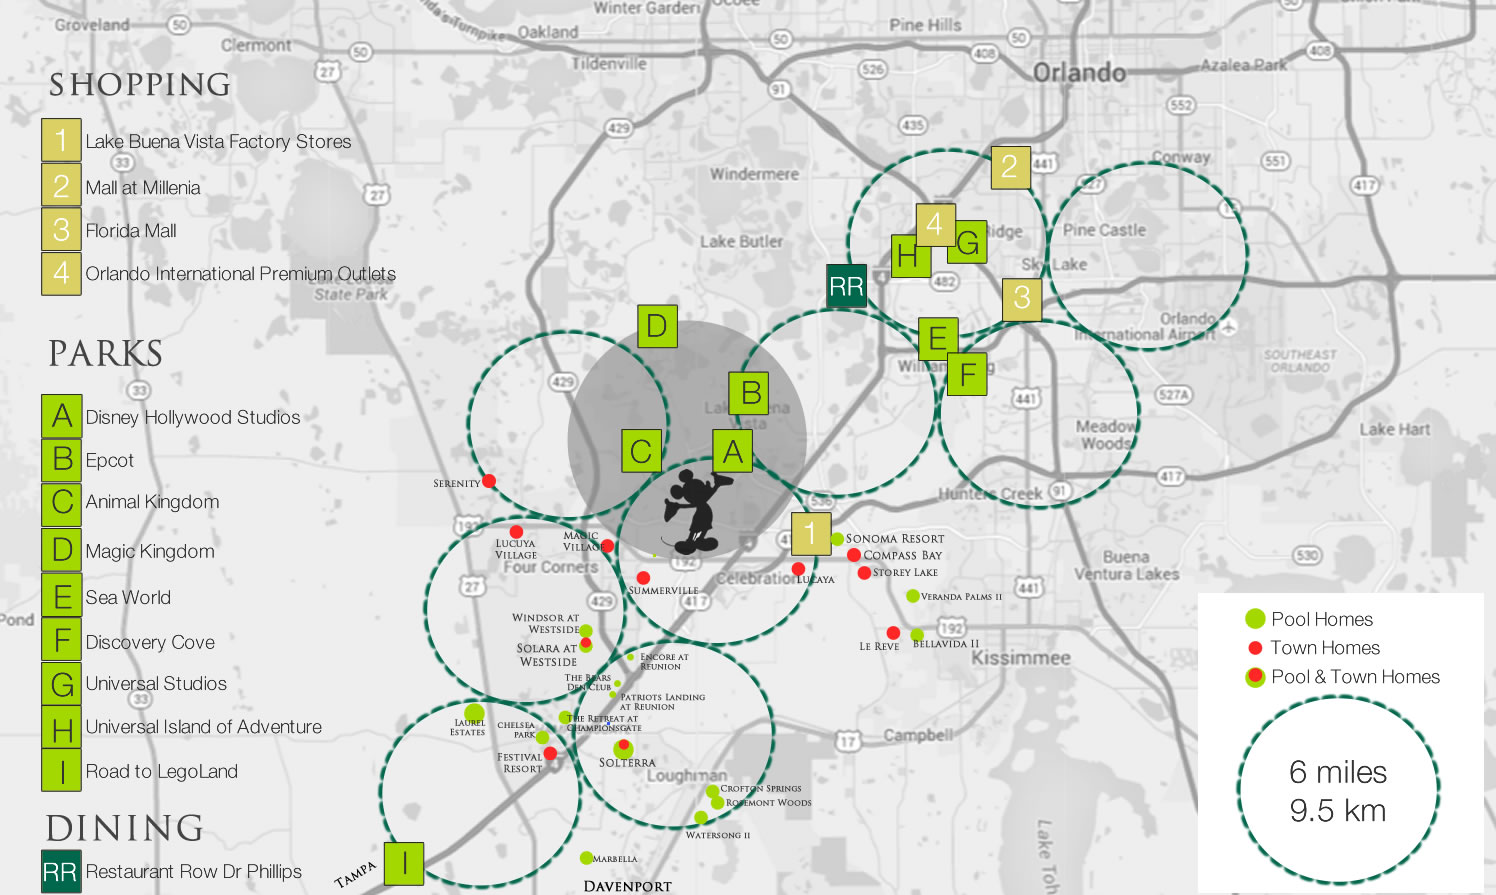 Orlando vacation home resort map in relation to parks and malls